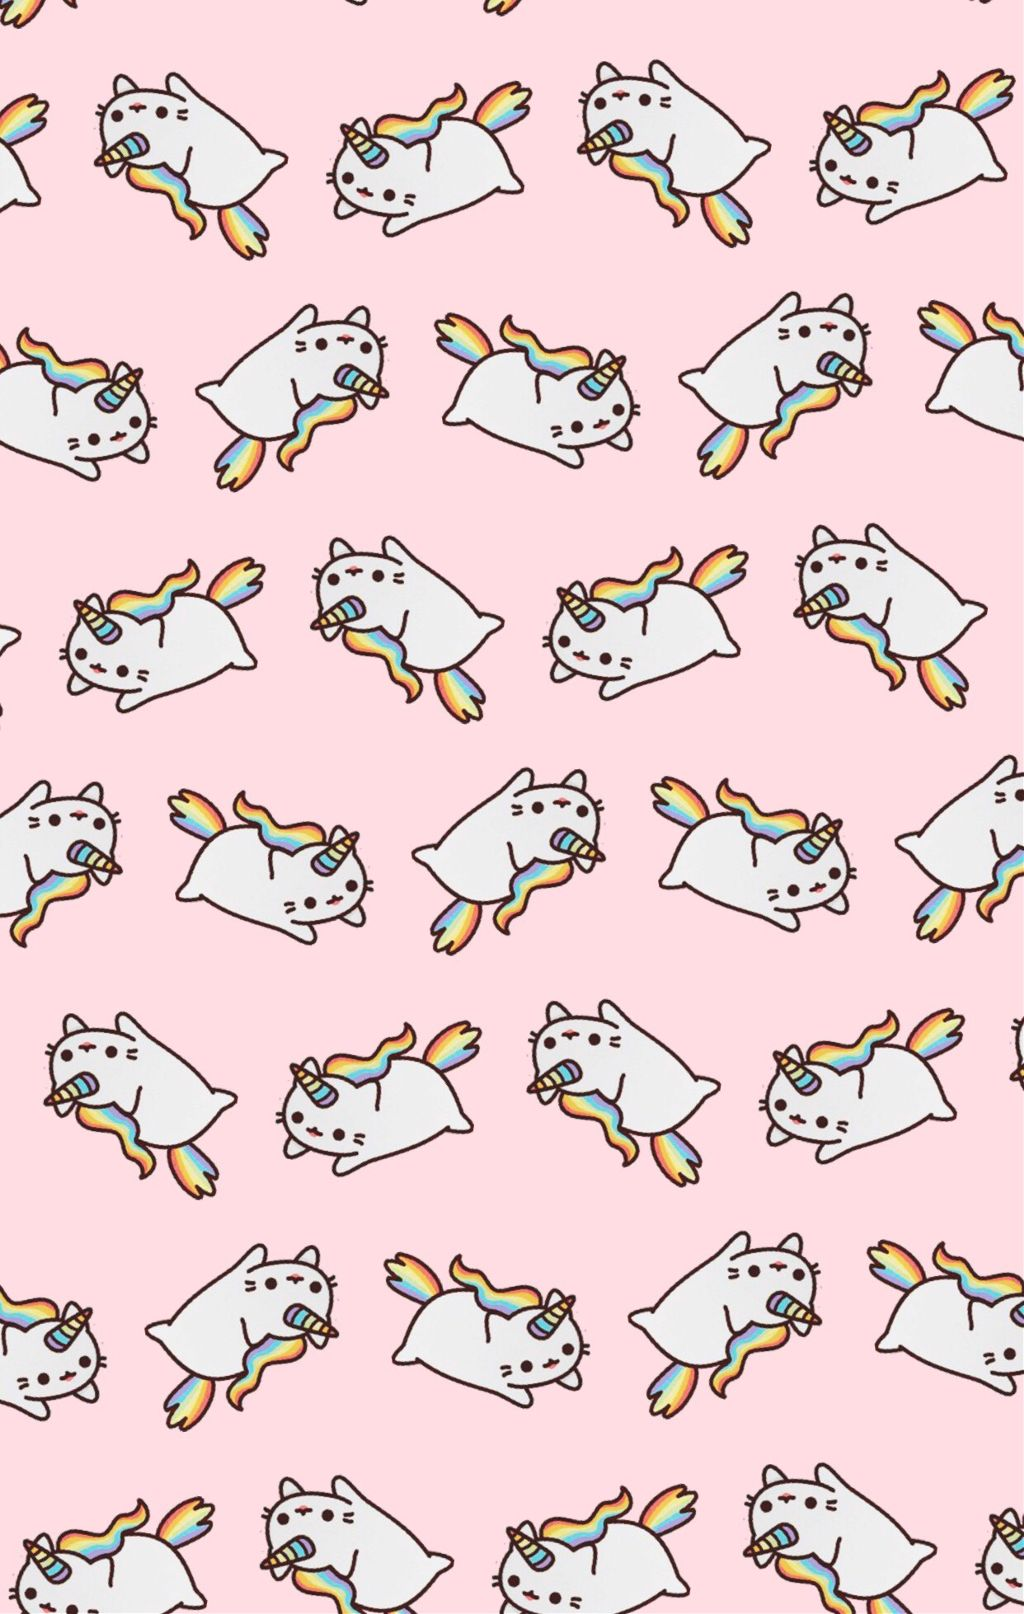 Caticorn Wallpaper I Made Haha Cat Unicorn Wallpaper